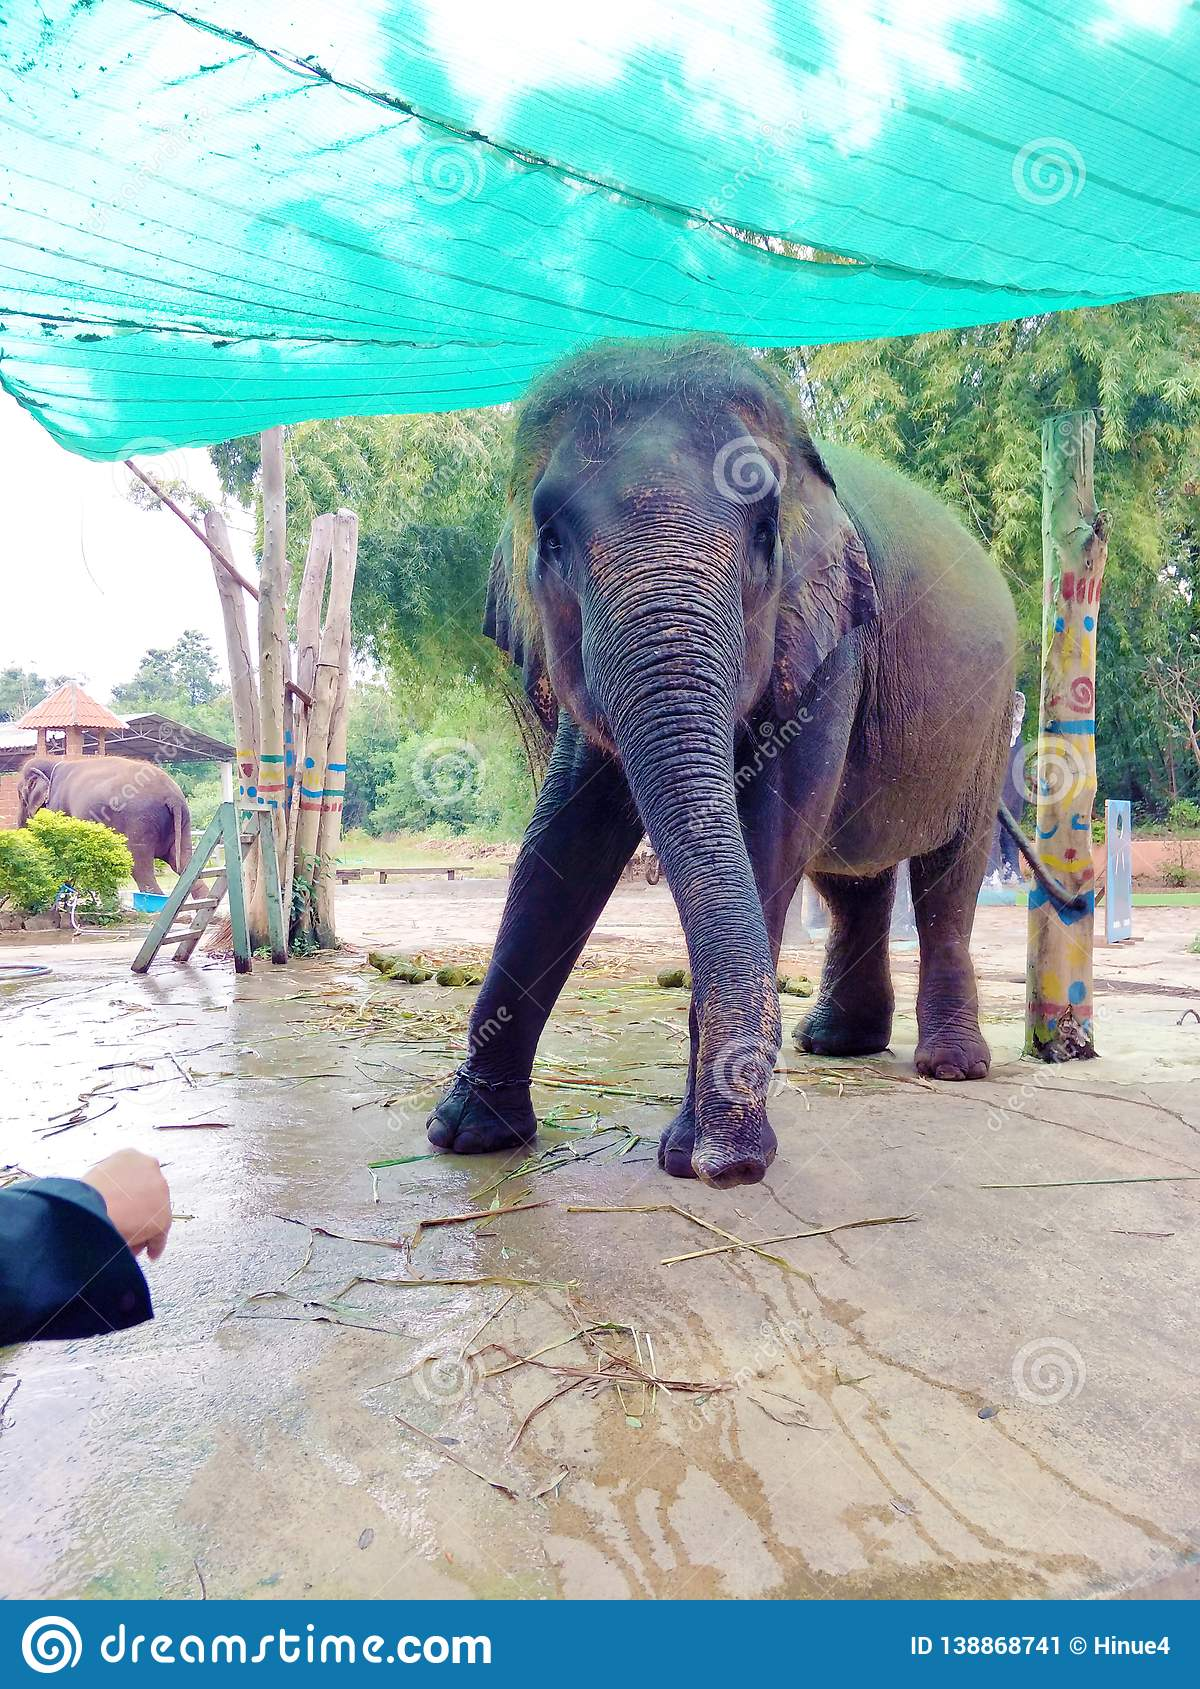 An elephant playing with a trainer